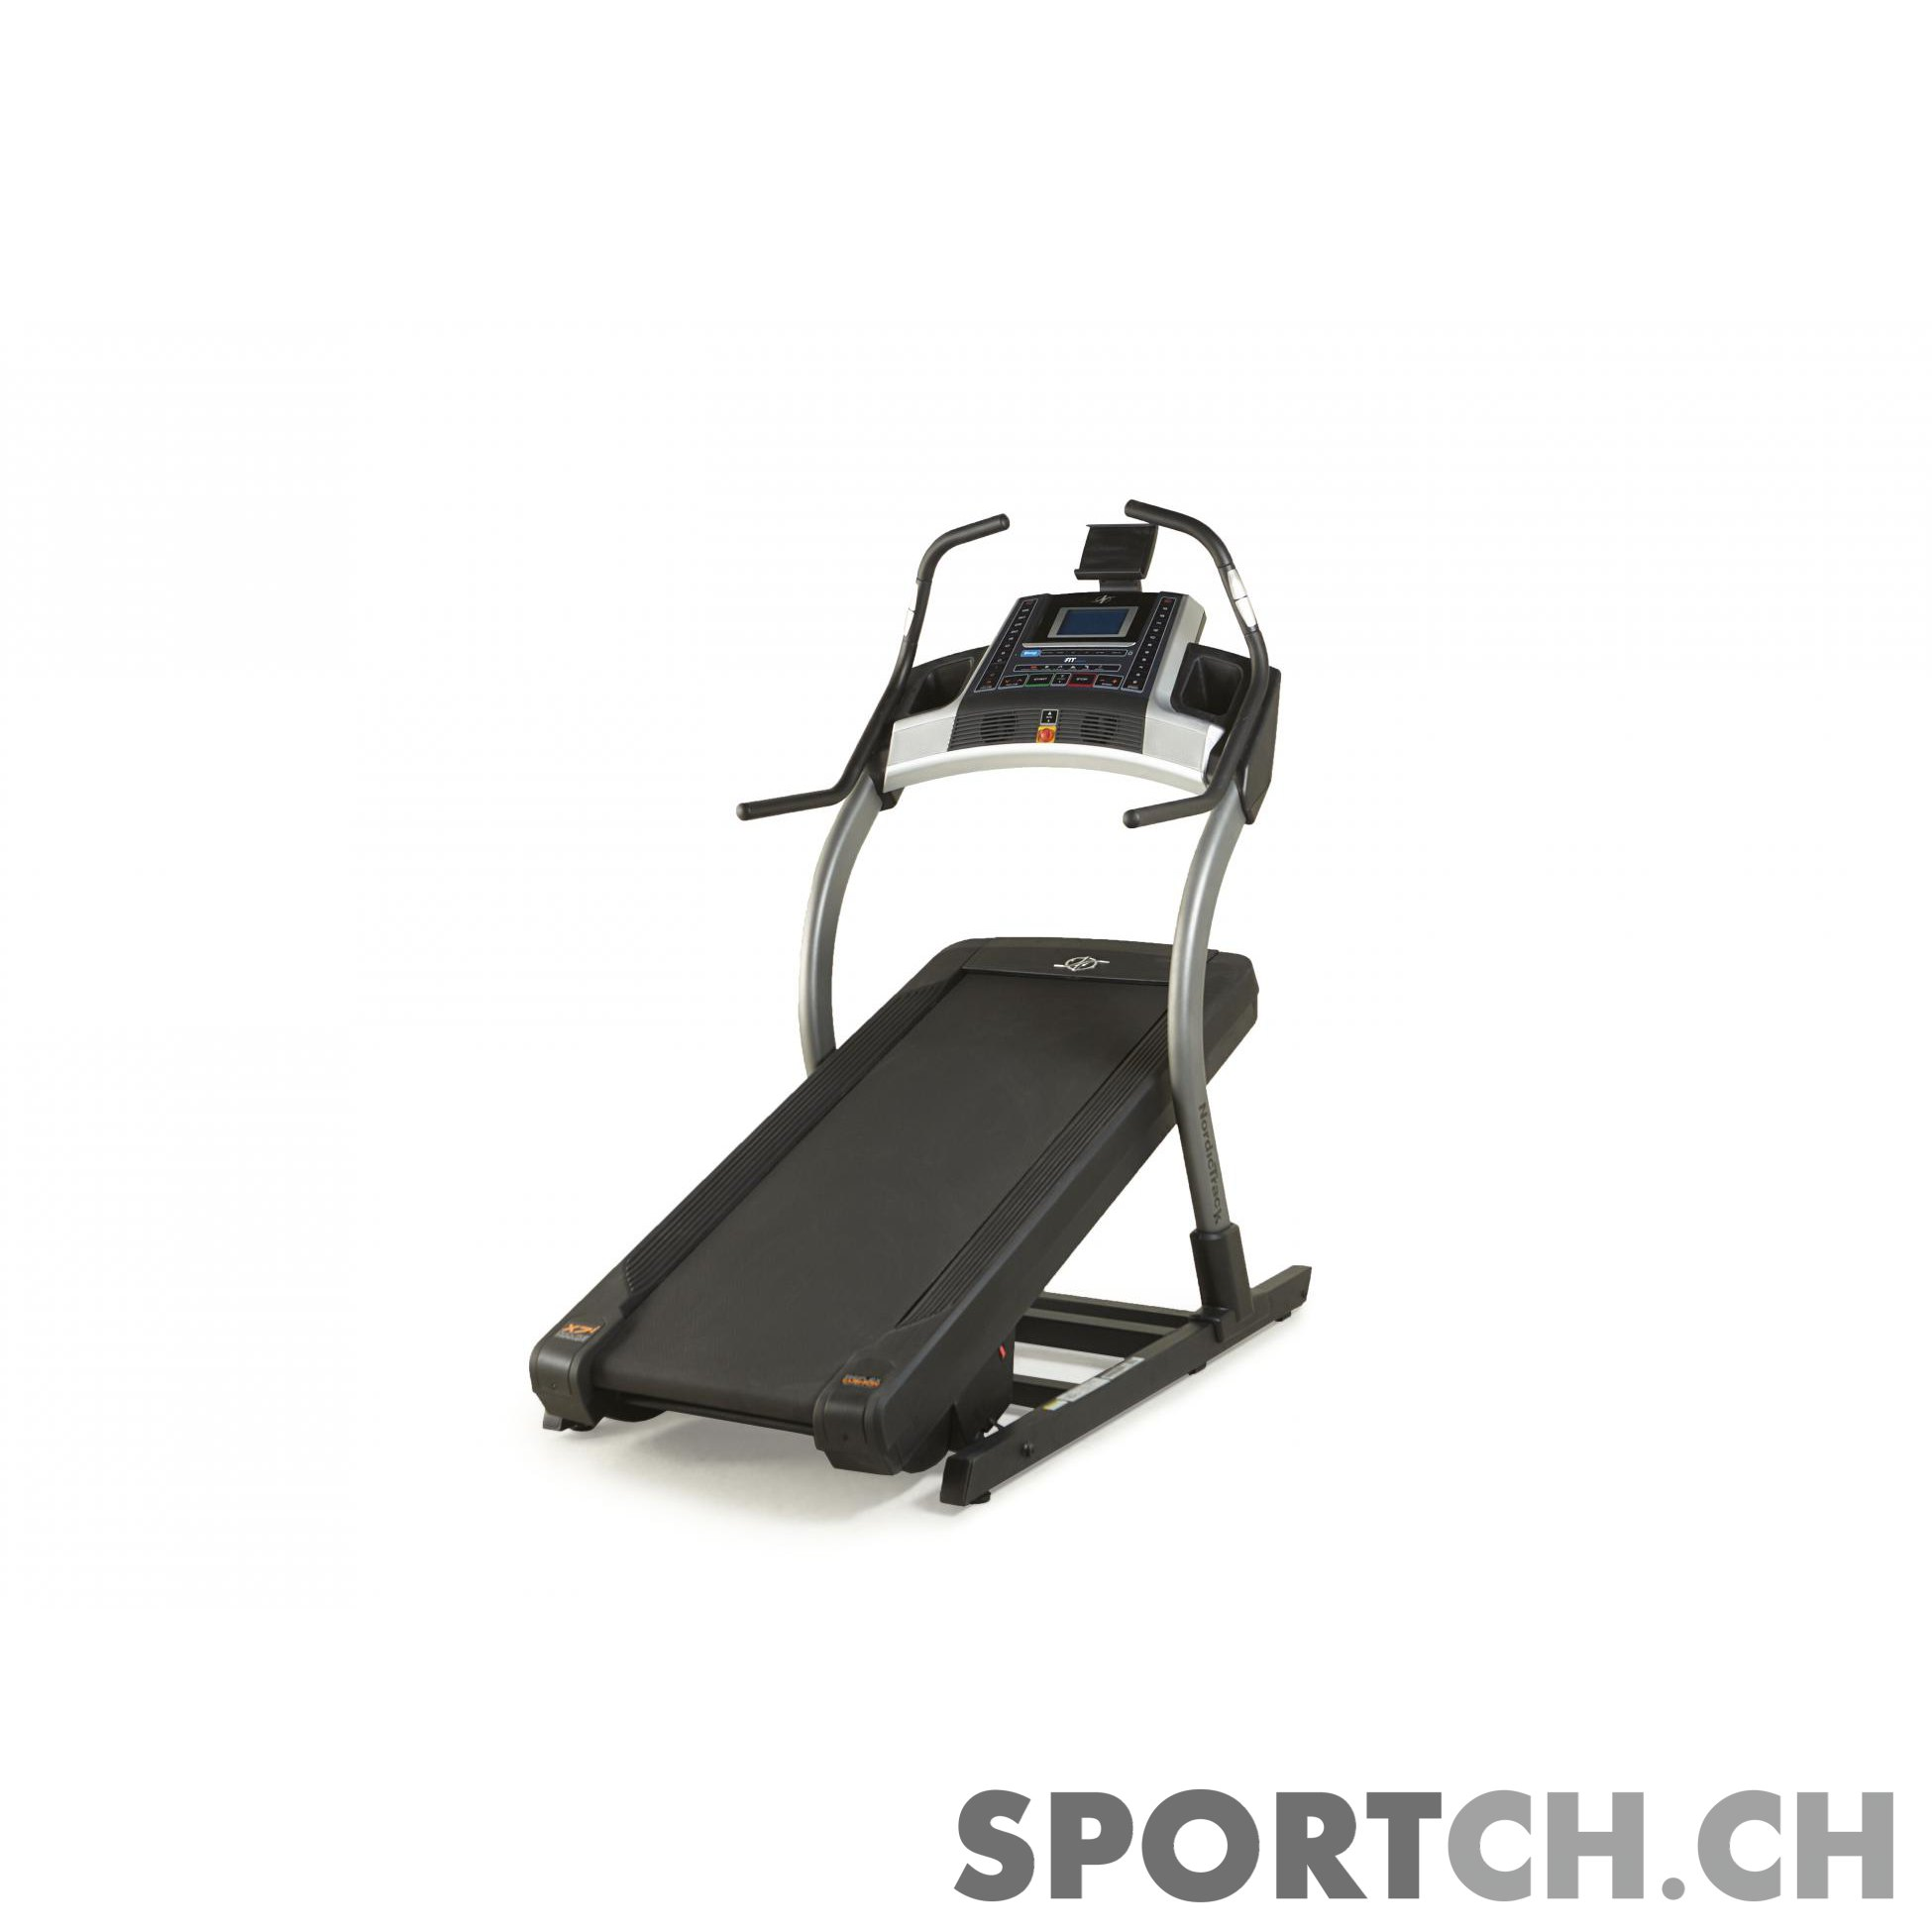 Tapis Course Nordictrack Tapis De Course Nordictrack Incline Trainer X7i Nordictrack